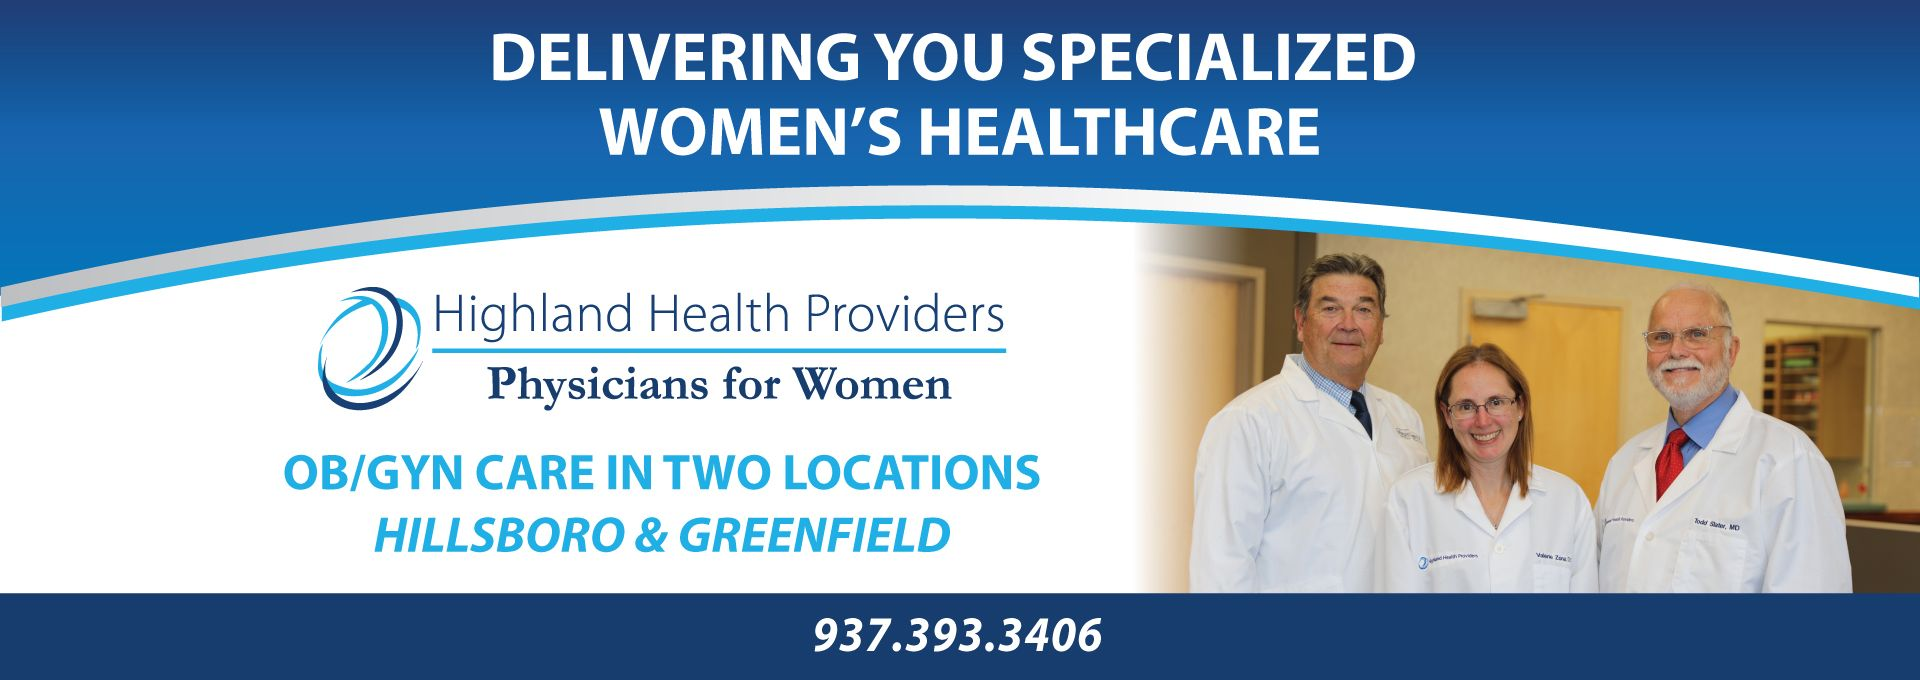 Highland health providers physicians for women. OG/GYN care in hillsboro & greenfield